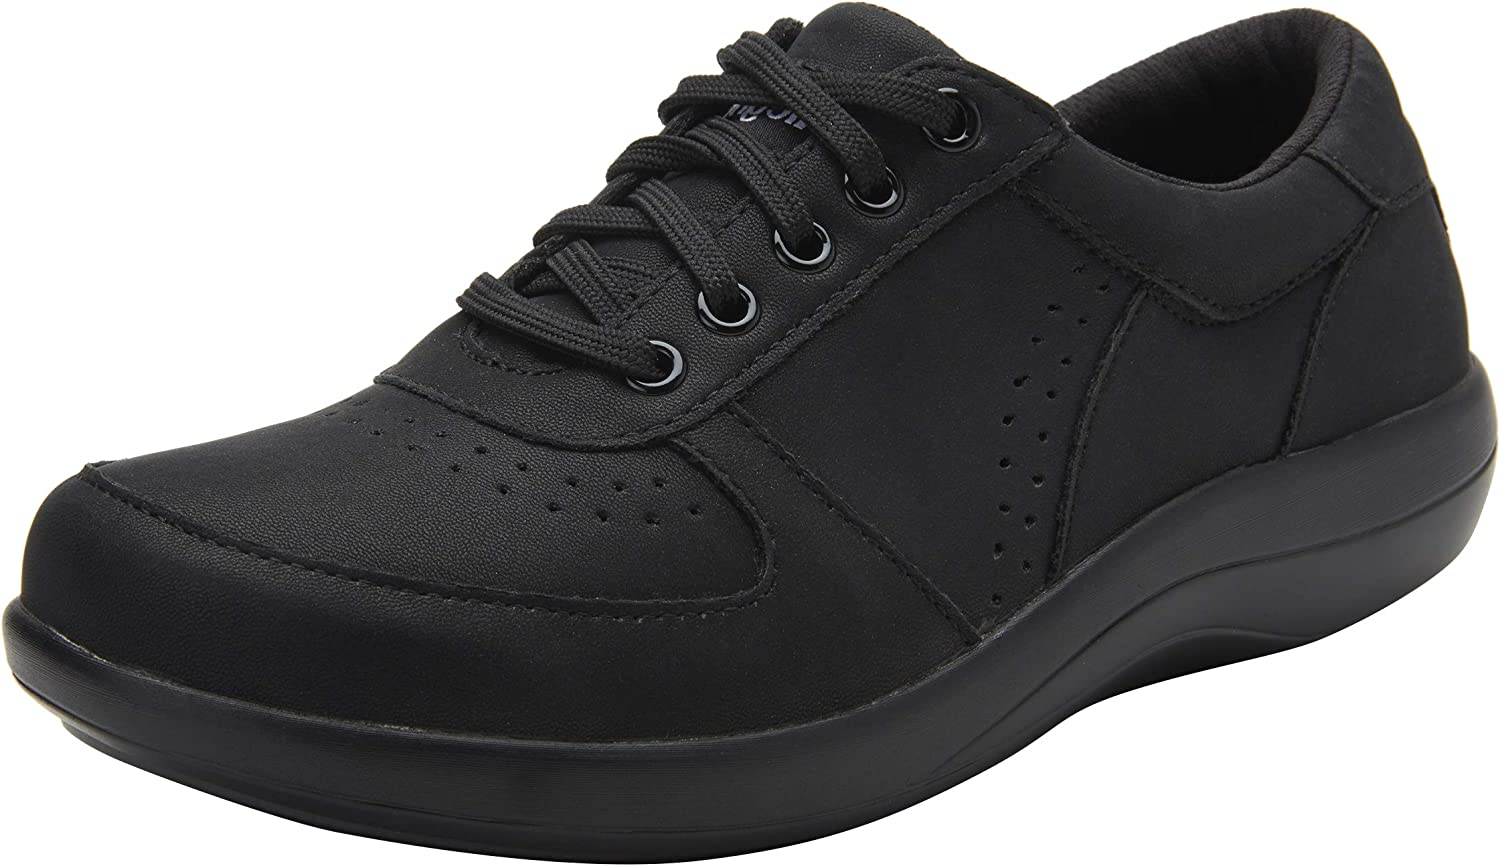 Max 53% OFF Alegria Max 75% OFF Women's Casual Sneakers and Fashion